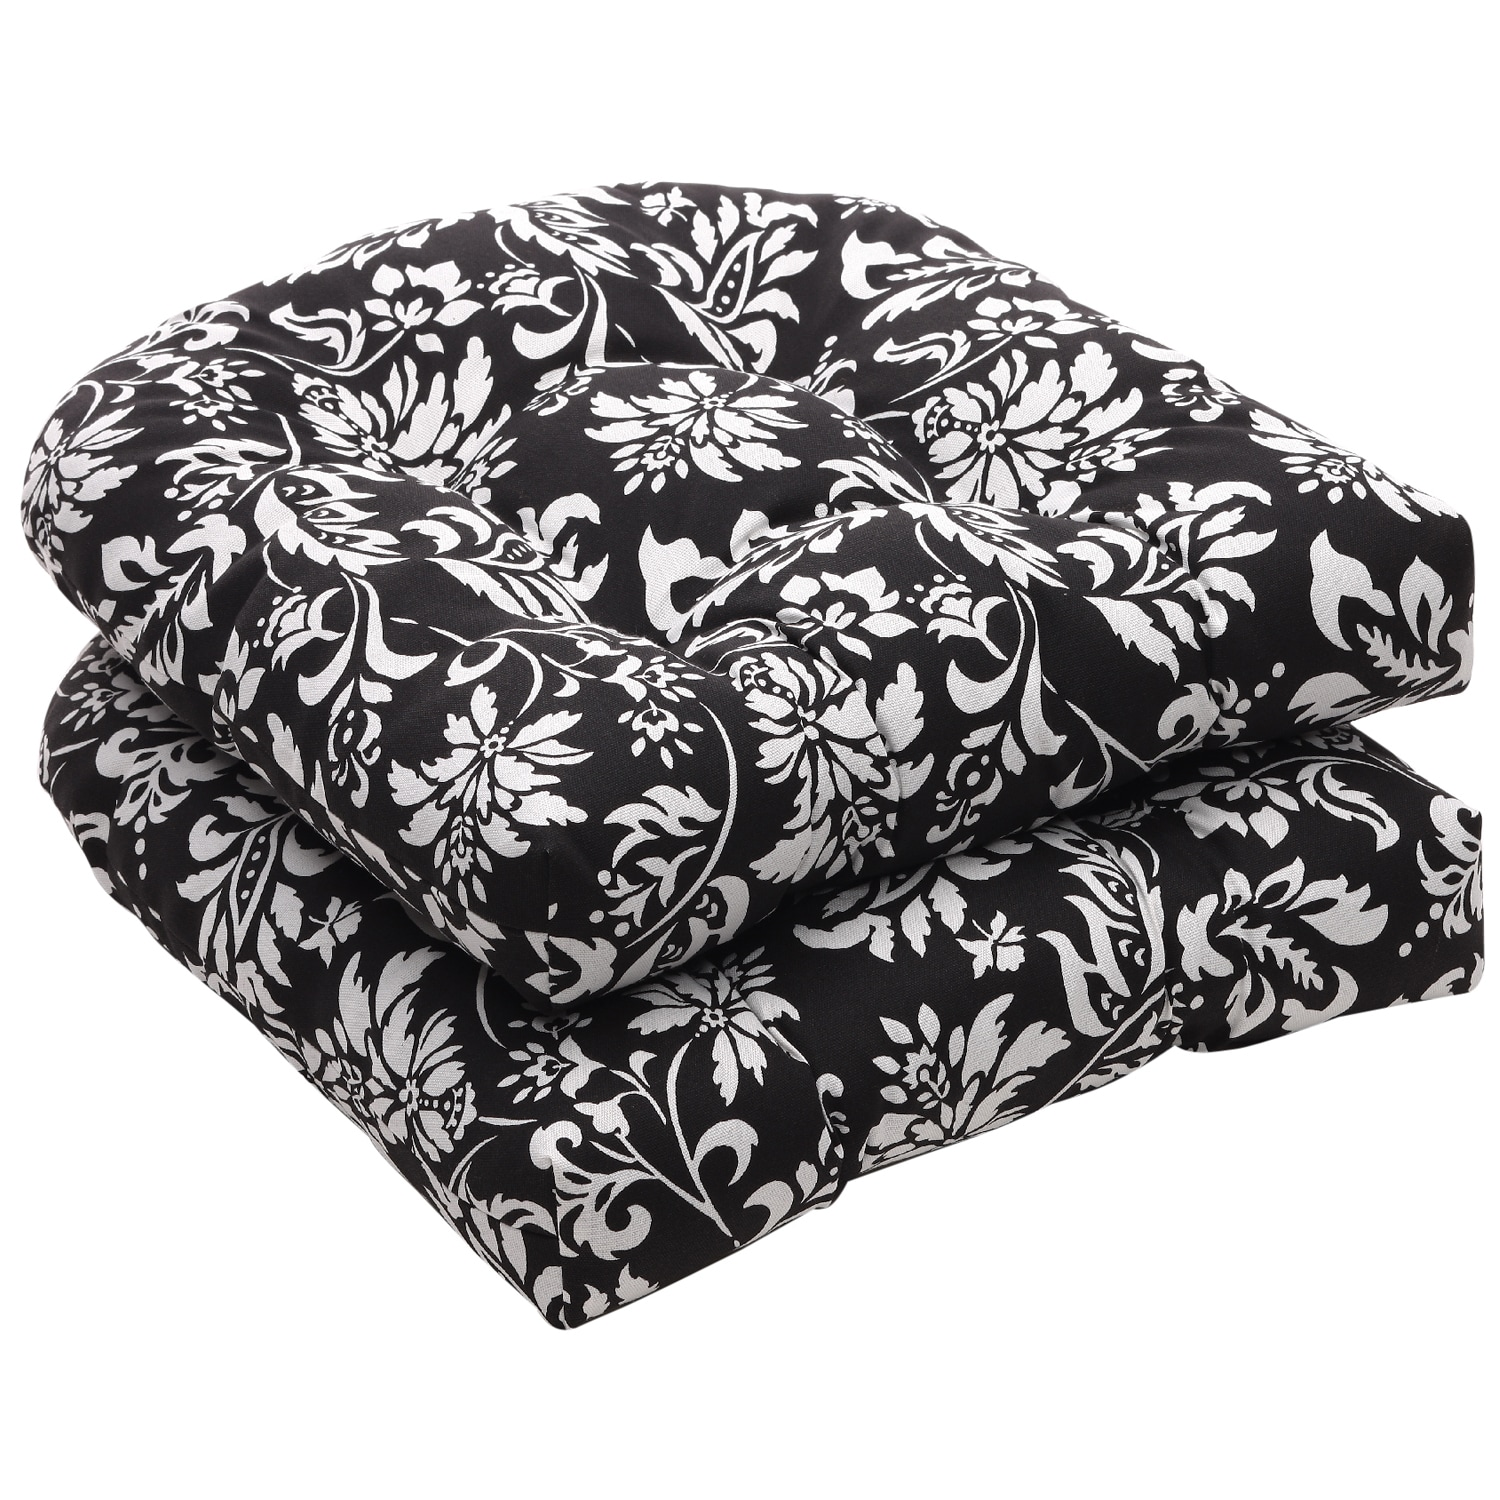 Patio Furniture Cushions White: Pillow Perfect Outdoor Black/ White Floral Wicker Seat